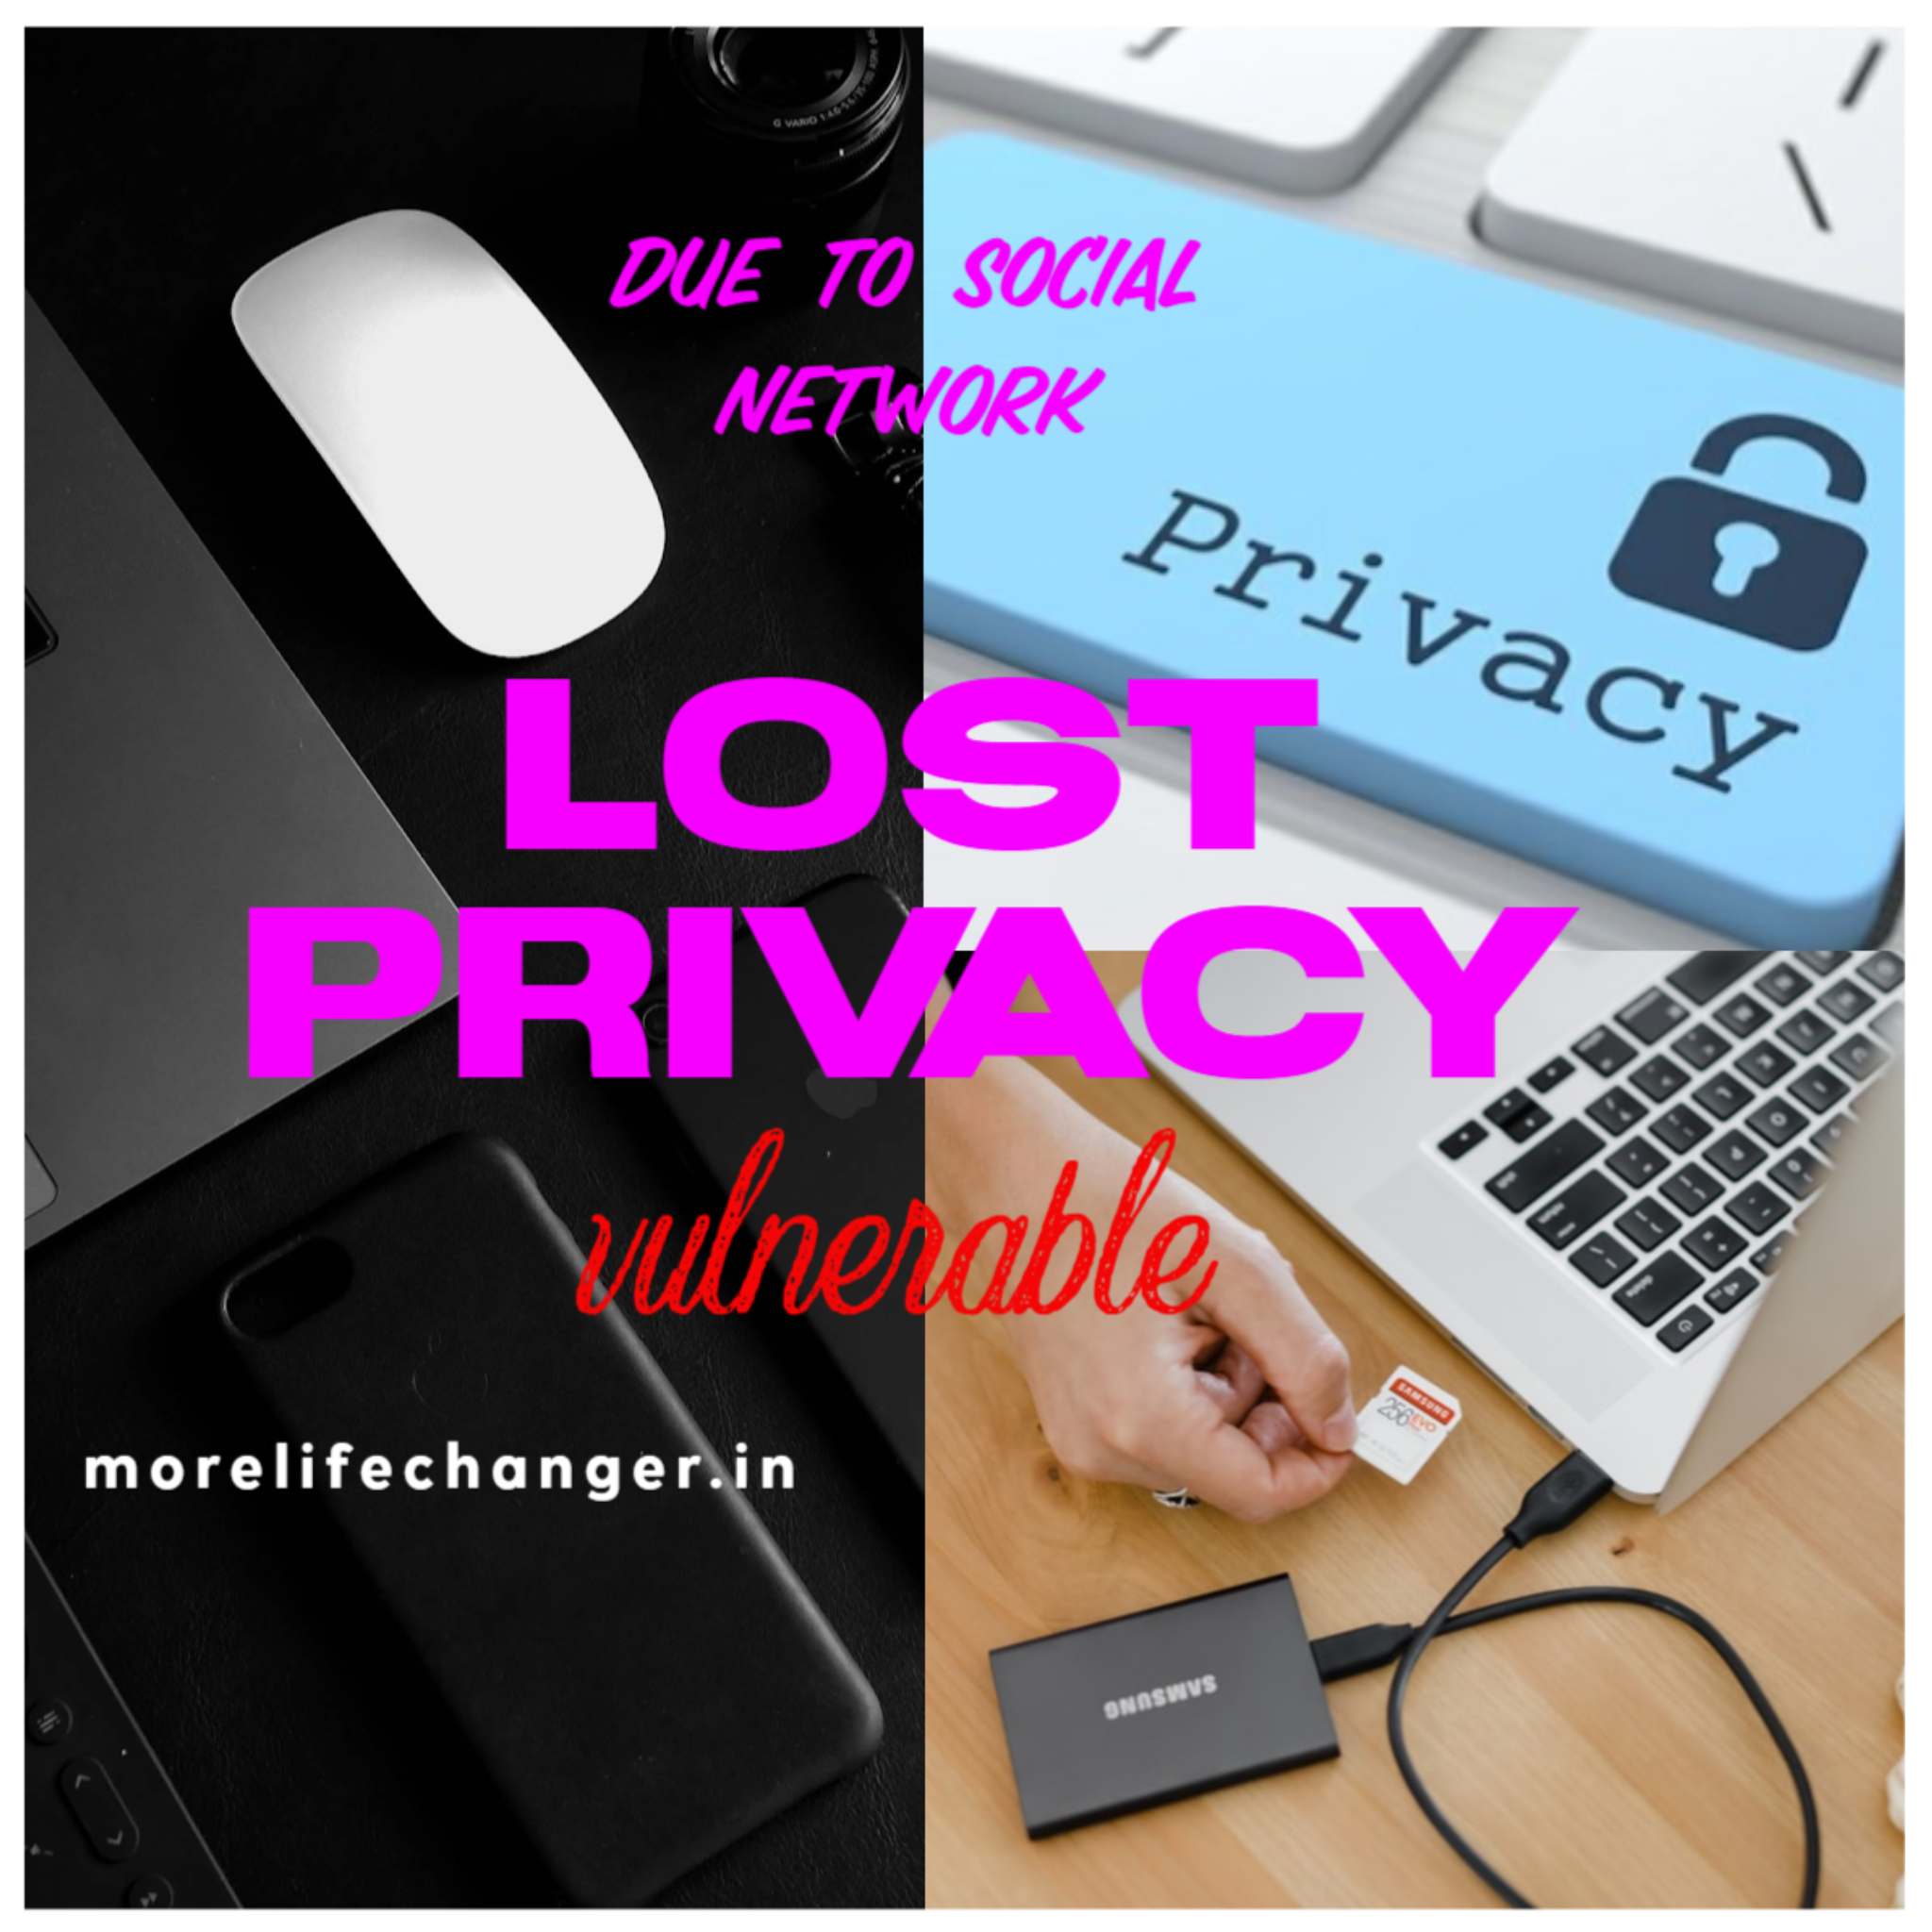 lost privacy by social network